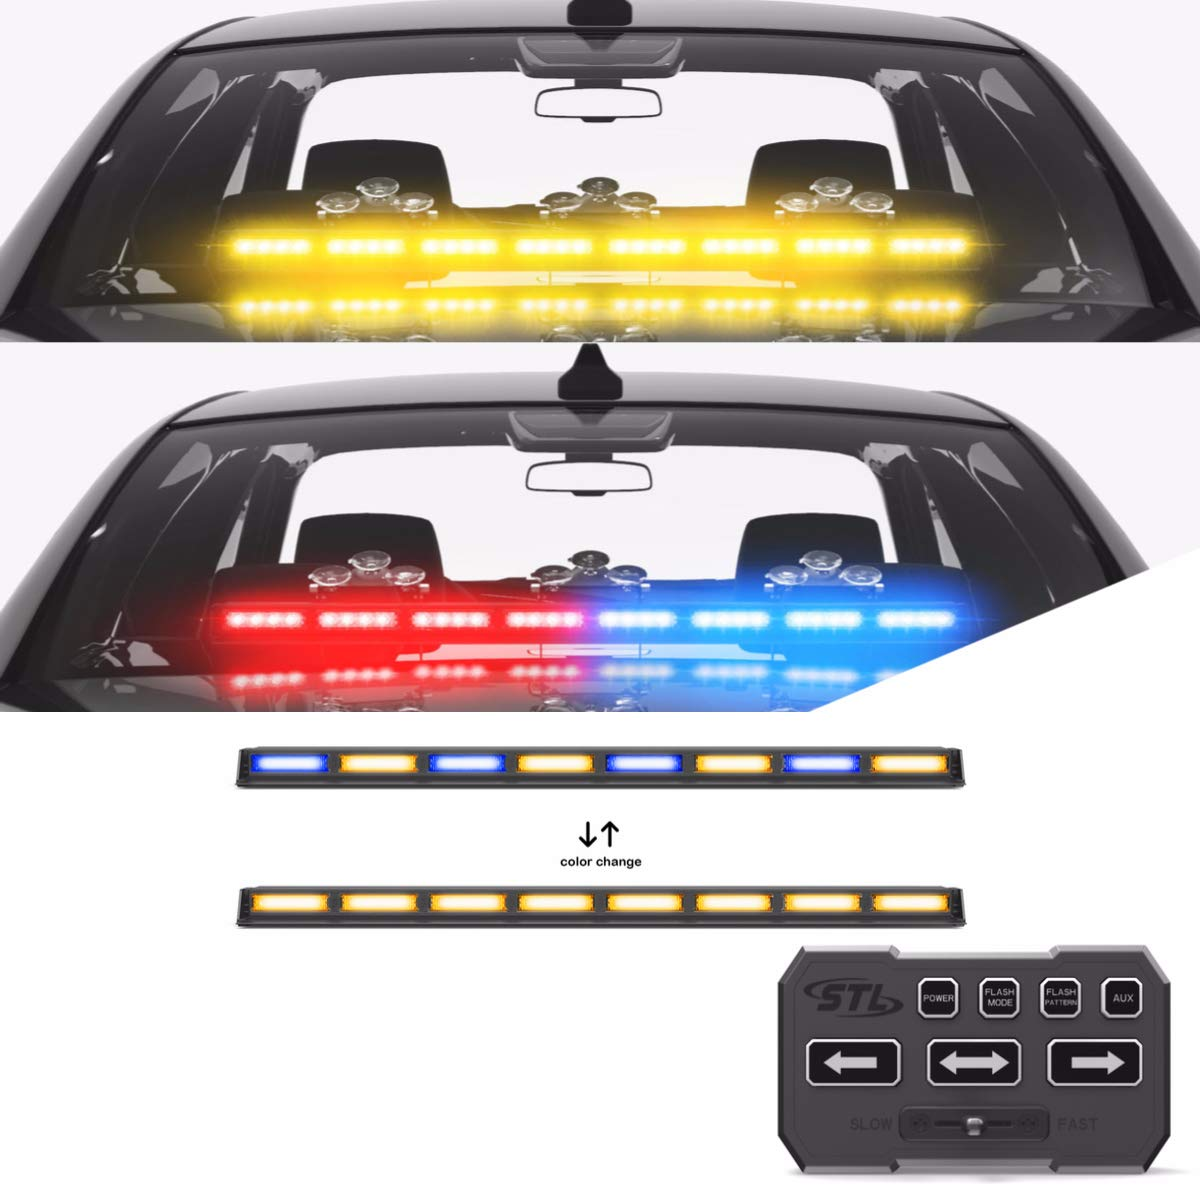 SpeedTech Lights Multicolor Striker TIR 8 Head LED Traffic Advisor Light Bar for Emergency Vehicles//Strobe Directional Warning Light Windshield Mount Red//Clear Alternating Amber